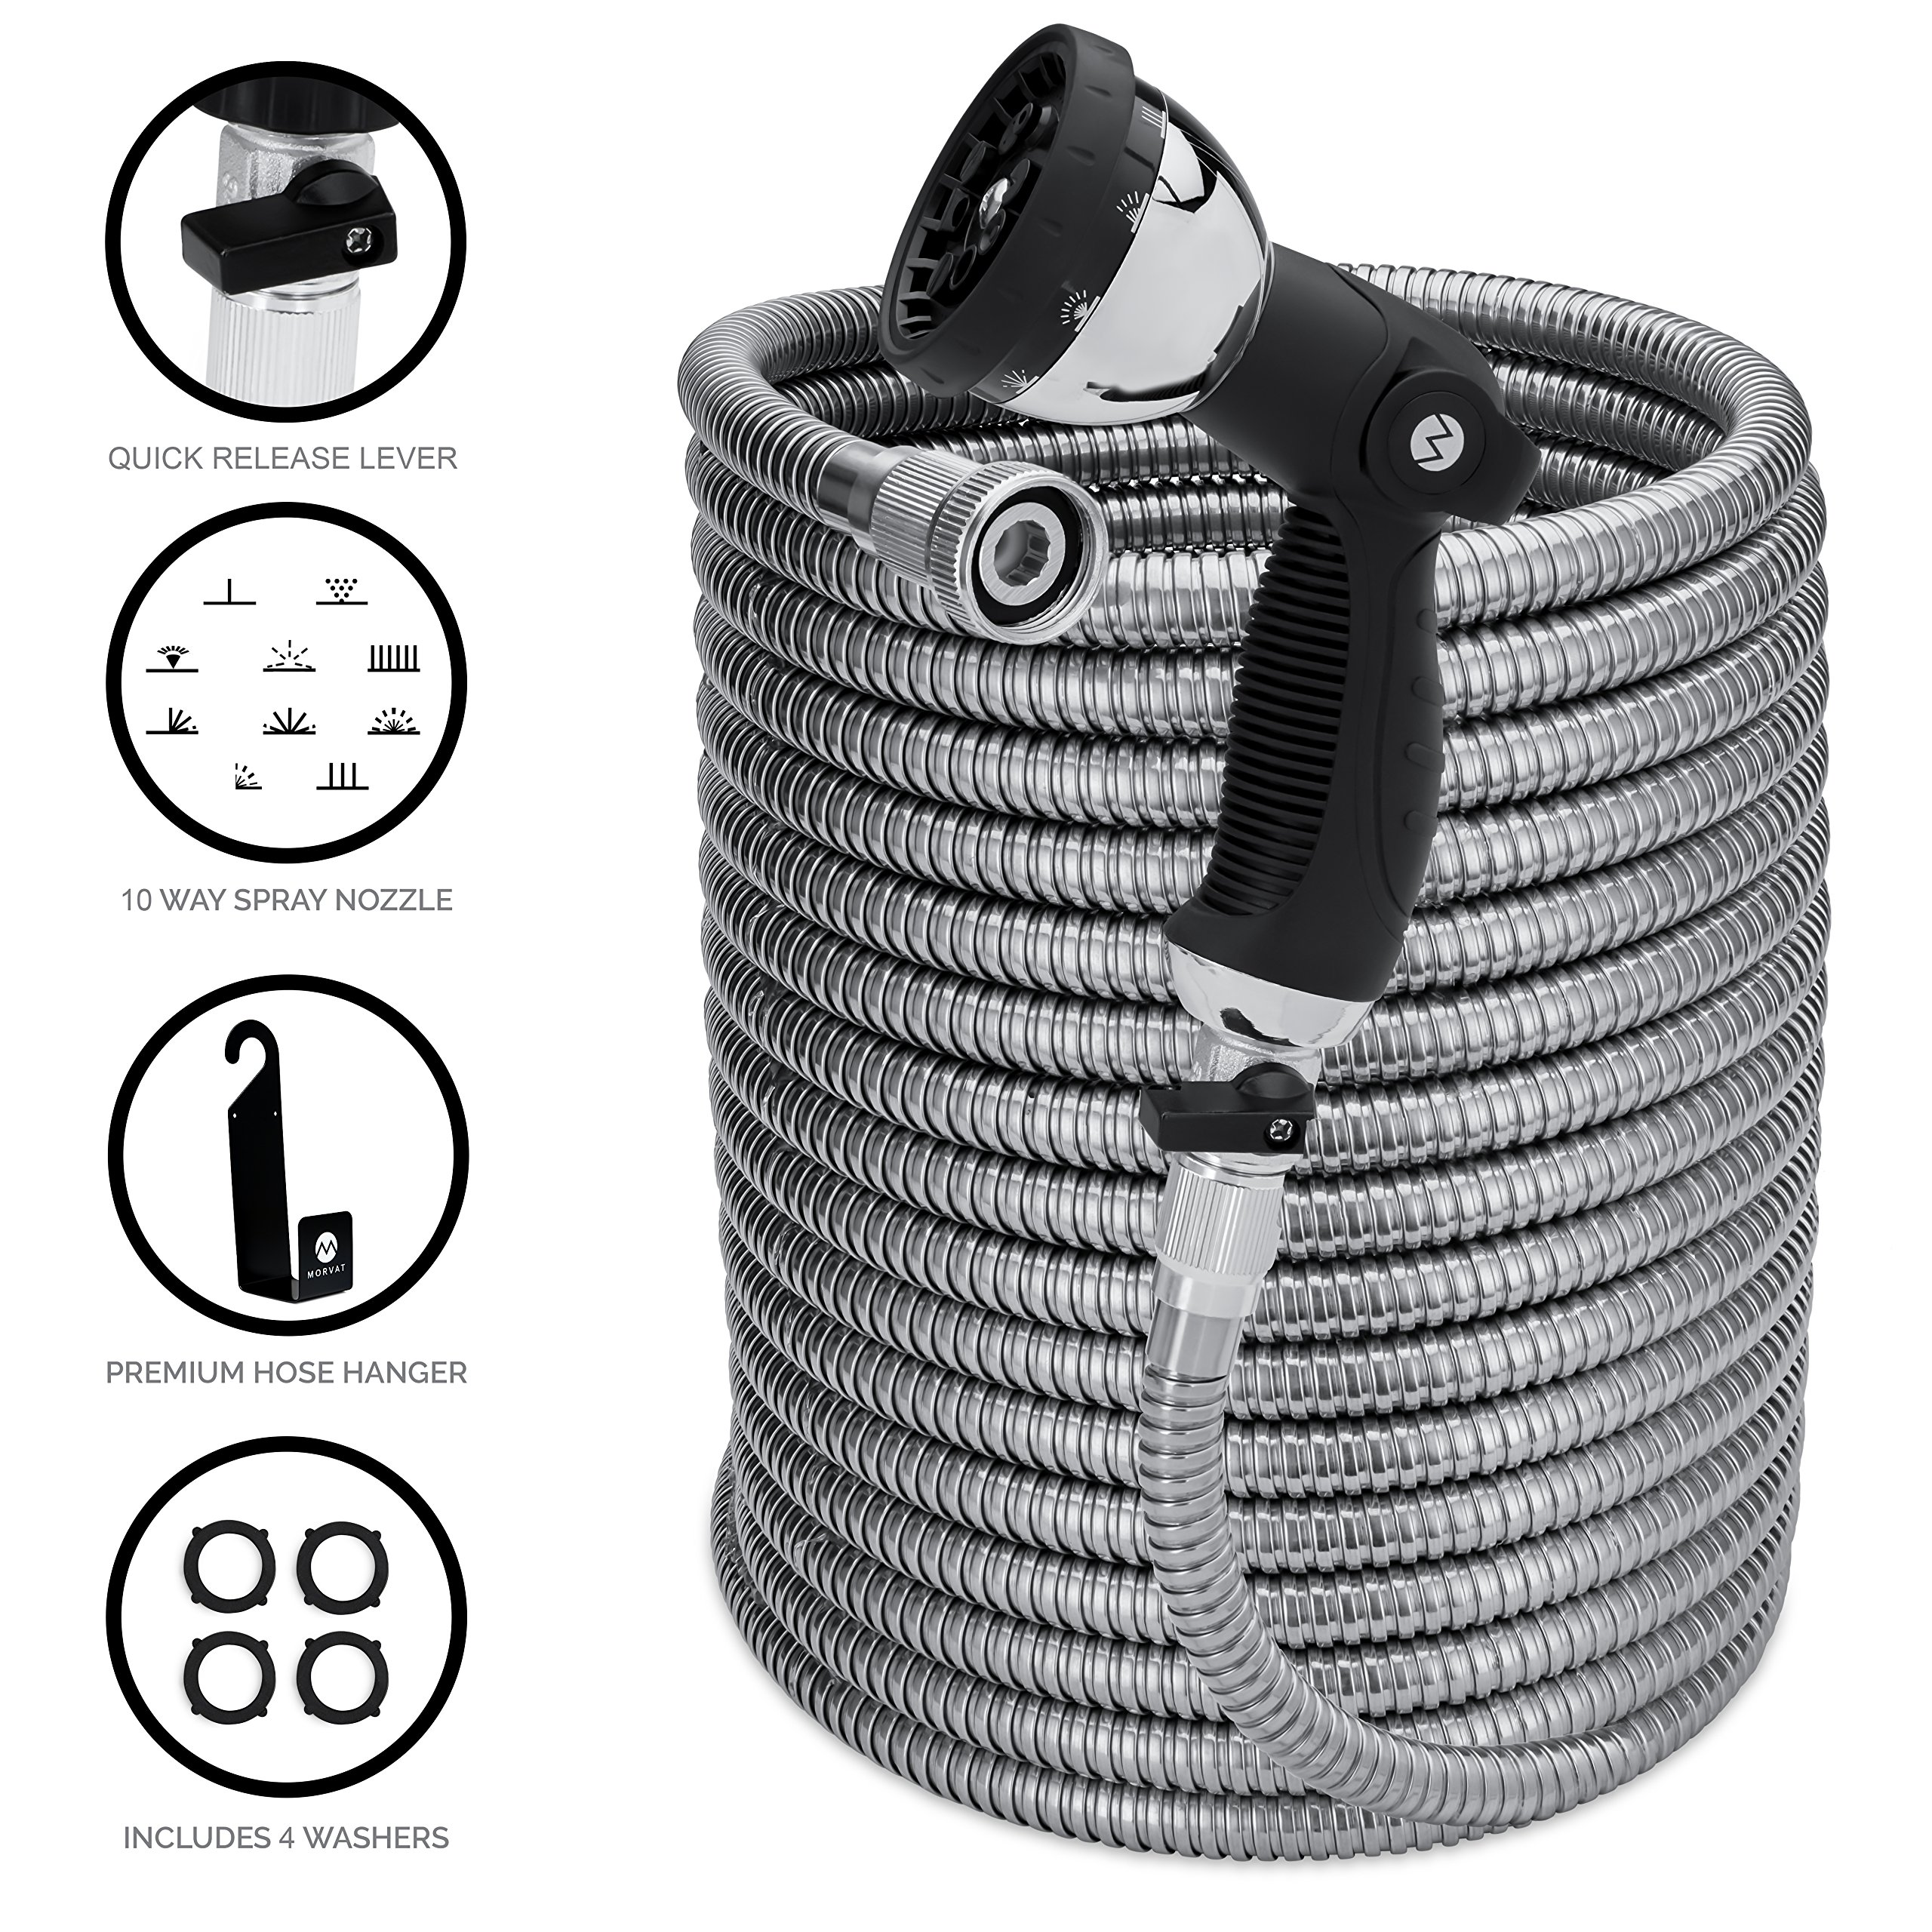 Morvat 100 Foot Stainless Steel Expandable Garden Hose | Heavy Duty Metal | Resistant to Knots, Tangles and Punctures | Steady Spray for Garden, Lawn, Washing Car or Pets | Outdoor Use